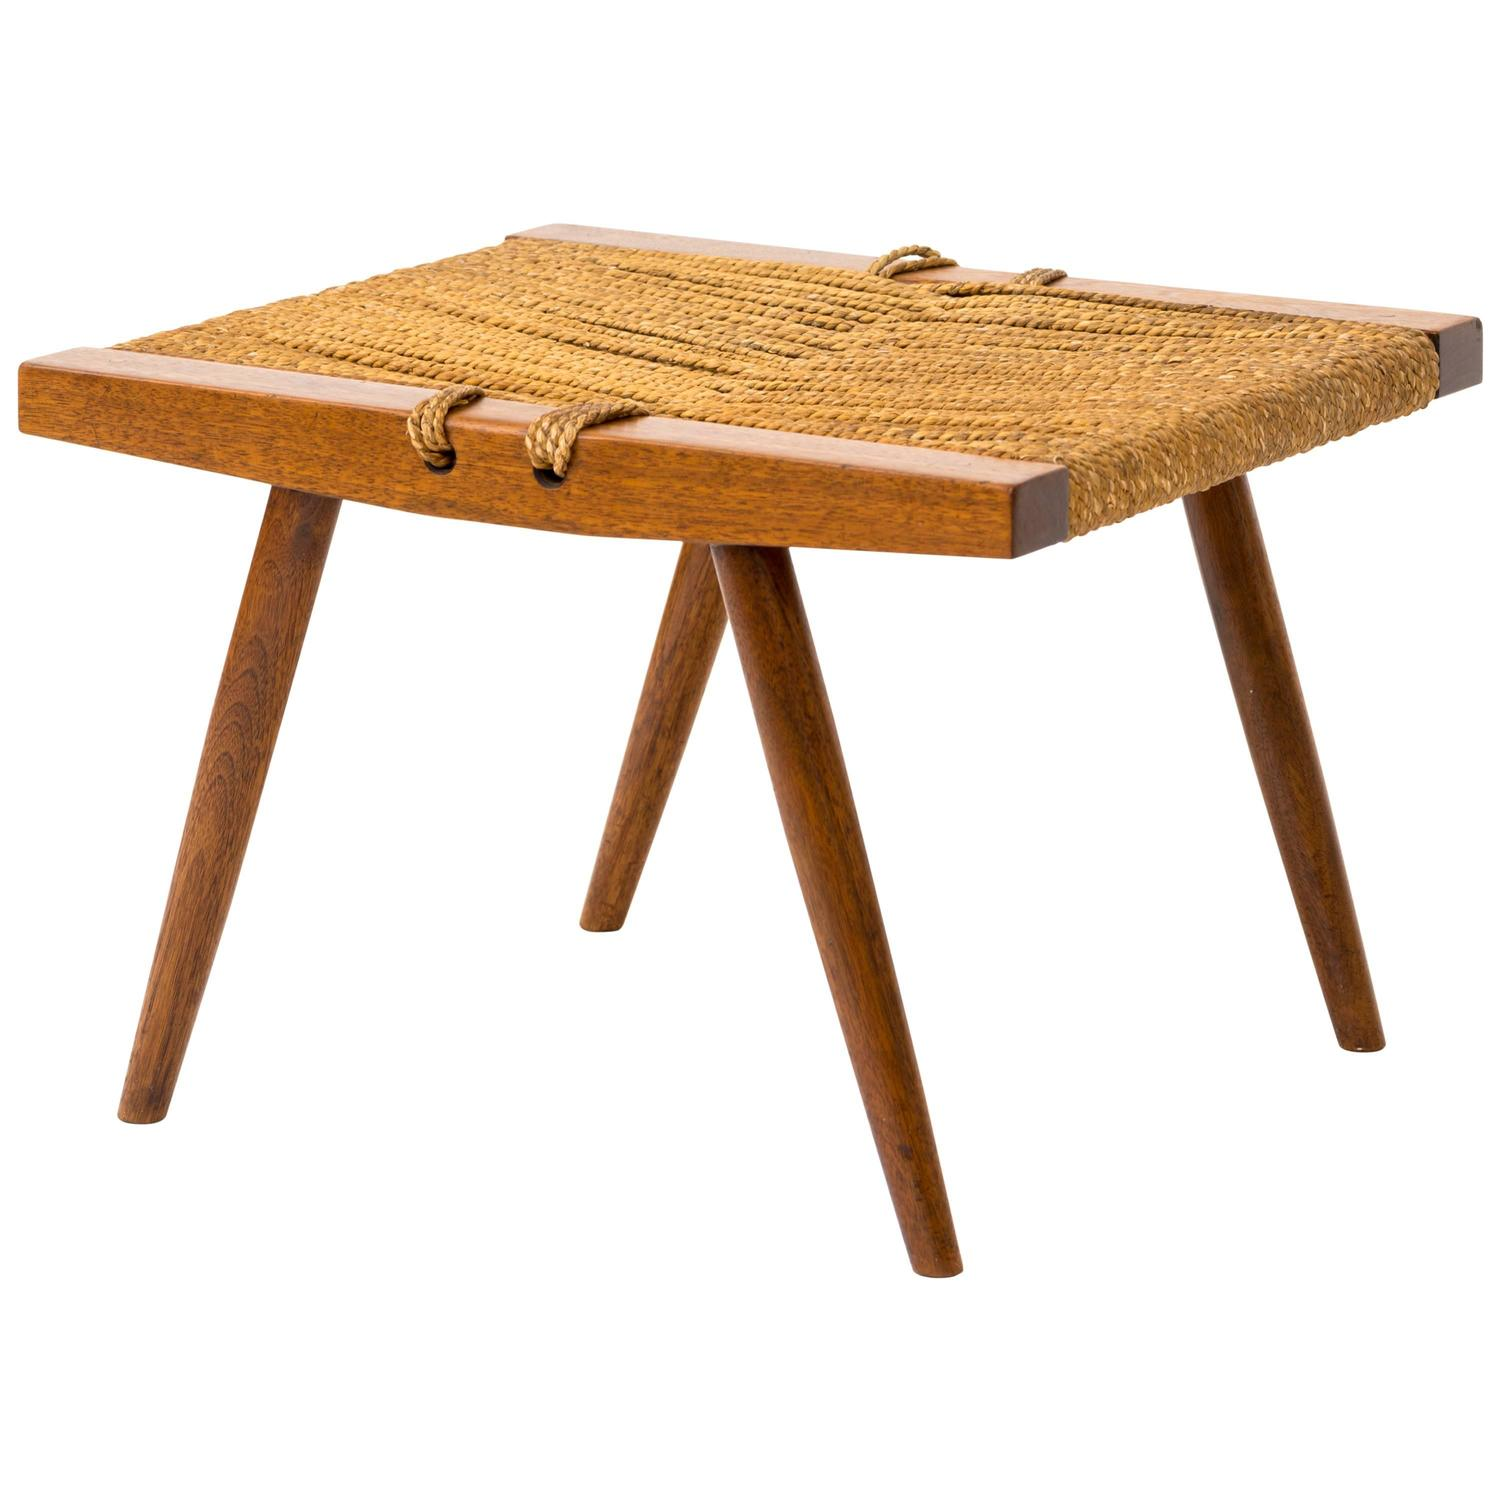 1950s George Nakashima Walnut And Woven Grass Seat Stool For Sale At 1stdibs